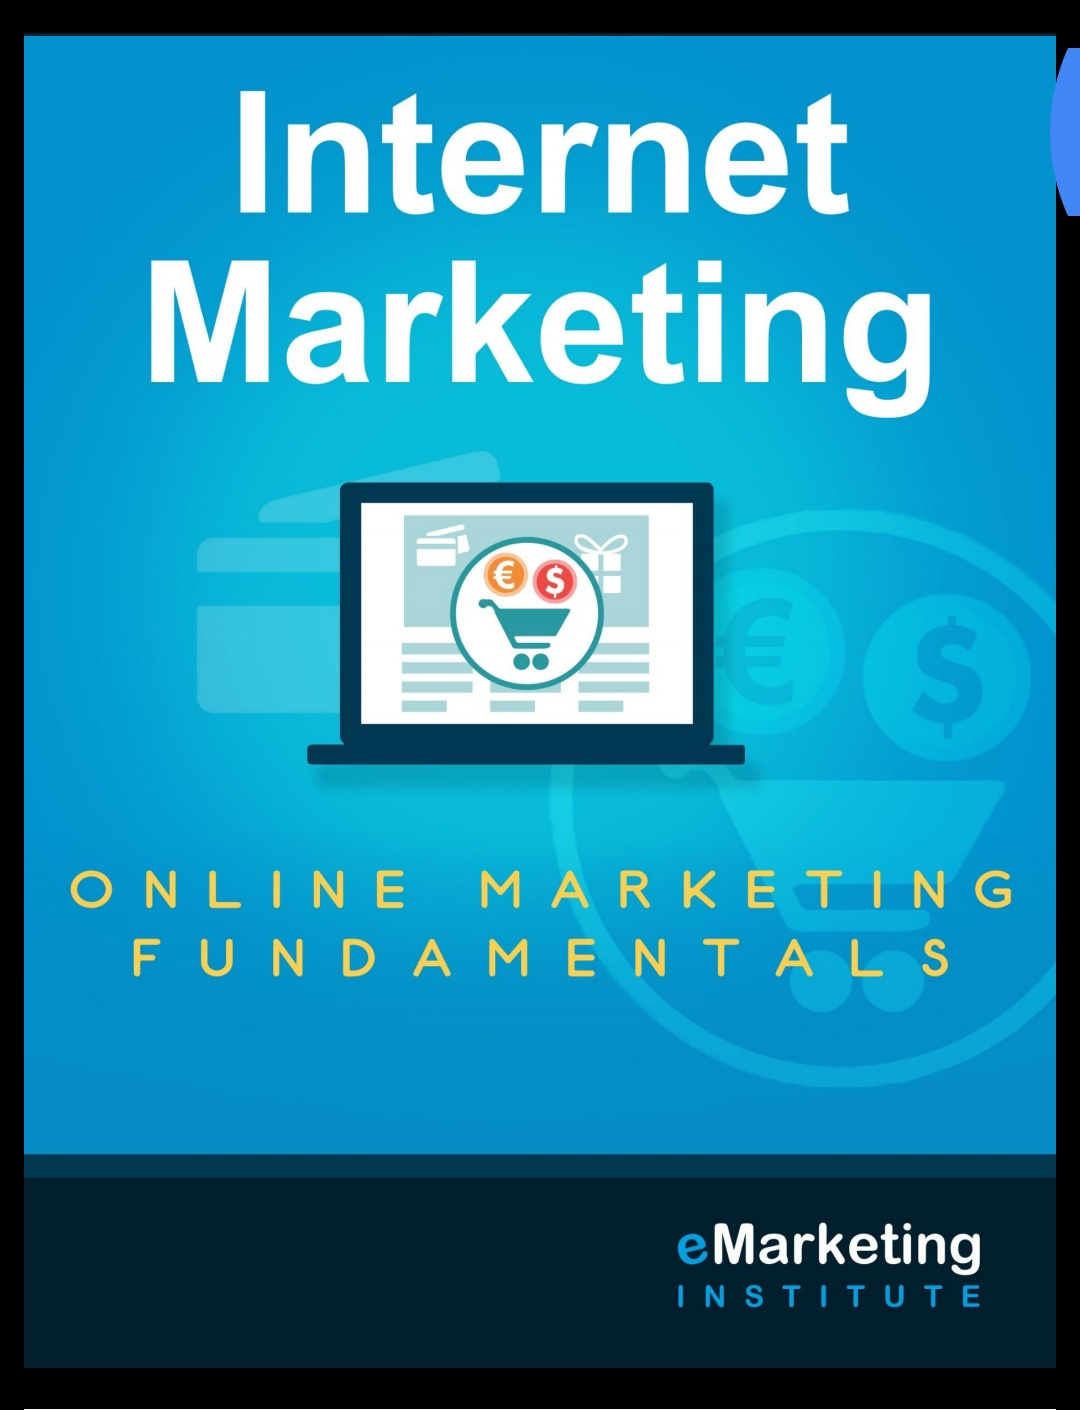 Free E-Book On Internet Marketing Stretegies